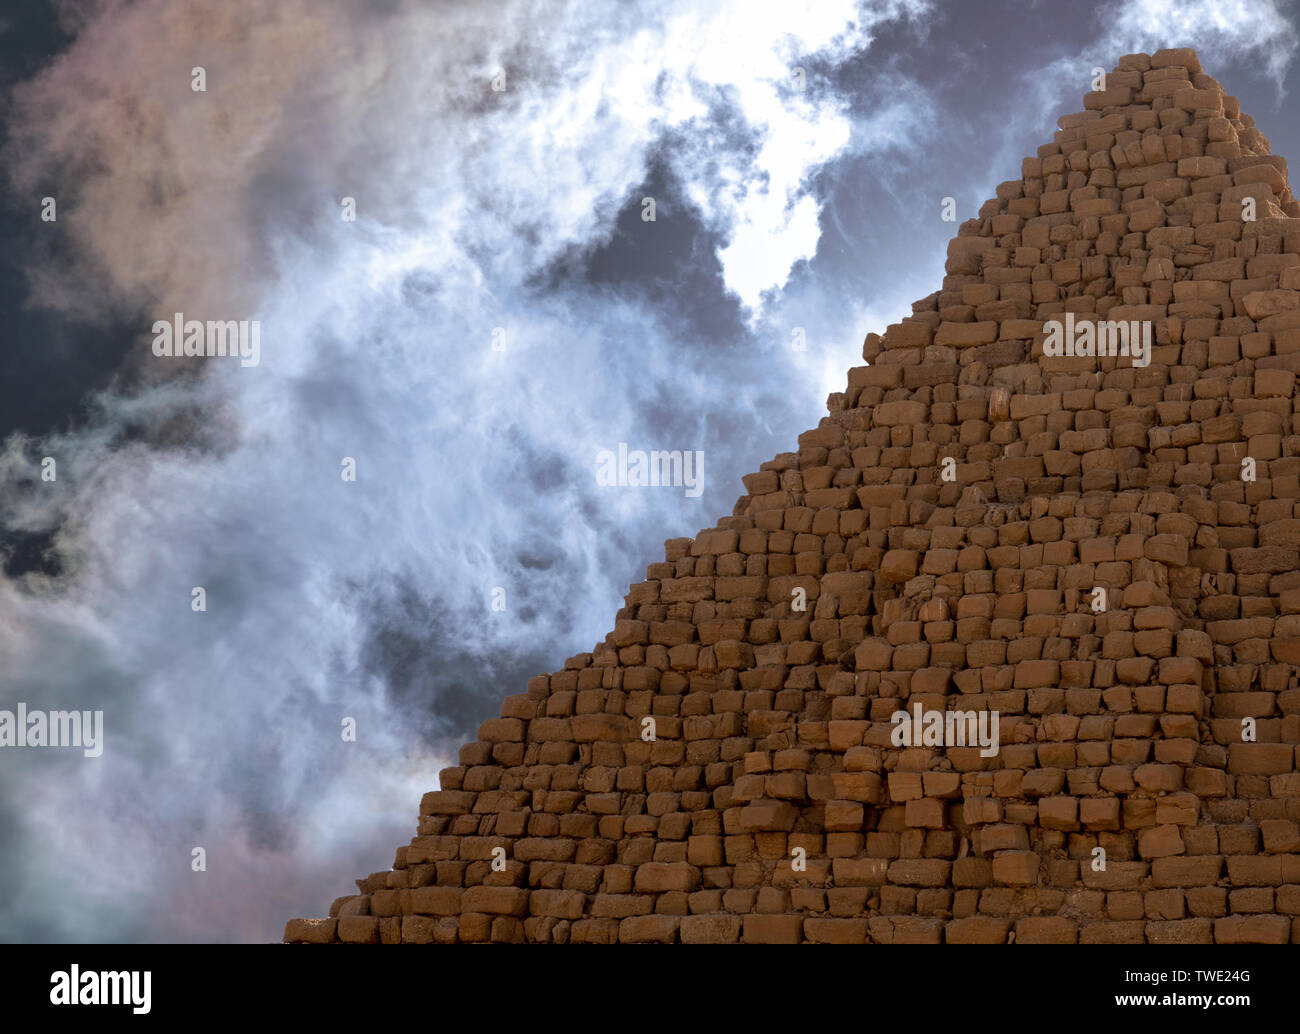 Pyramid of the Black Pharaohs of the Kush Empire in Sudan, with dramatic sky - Stock Image